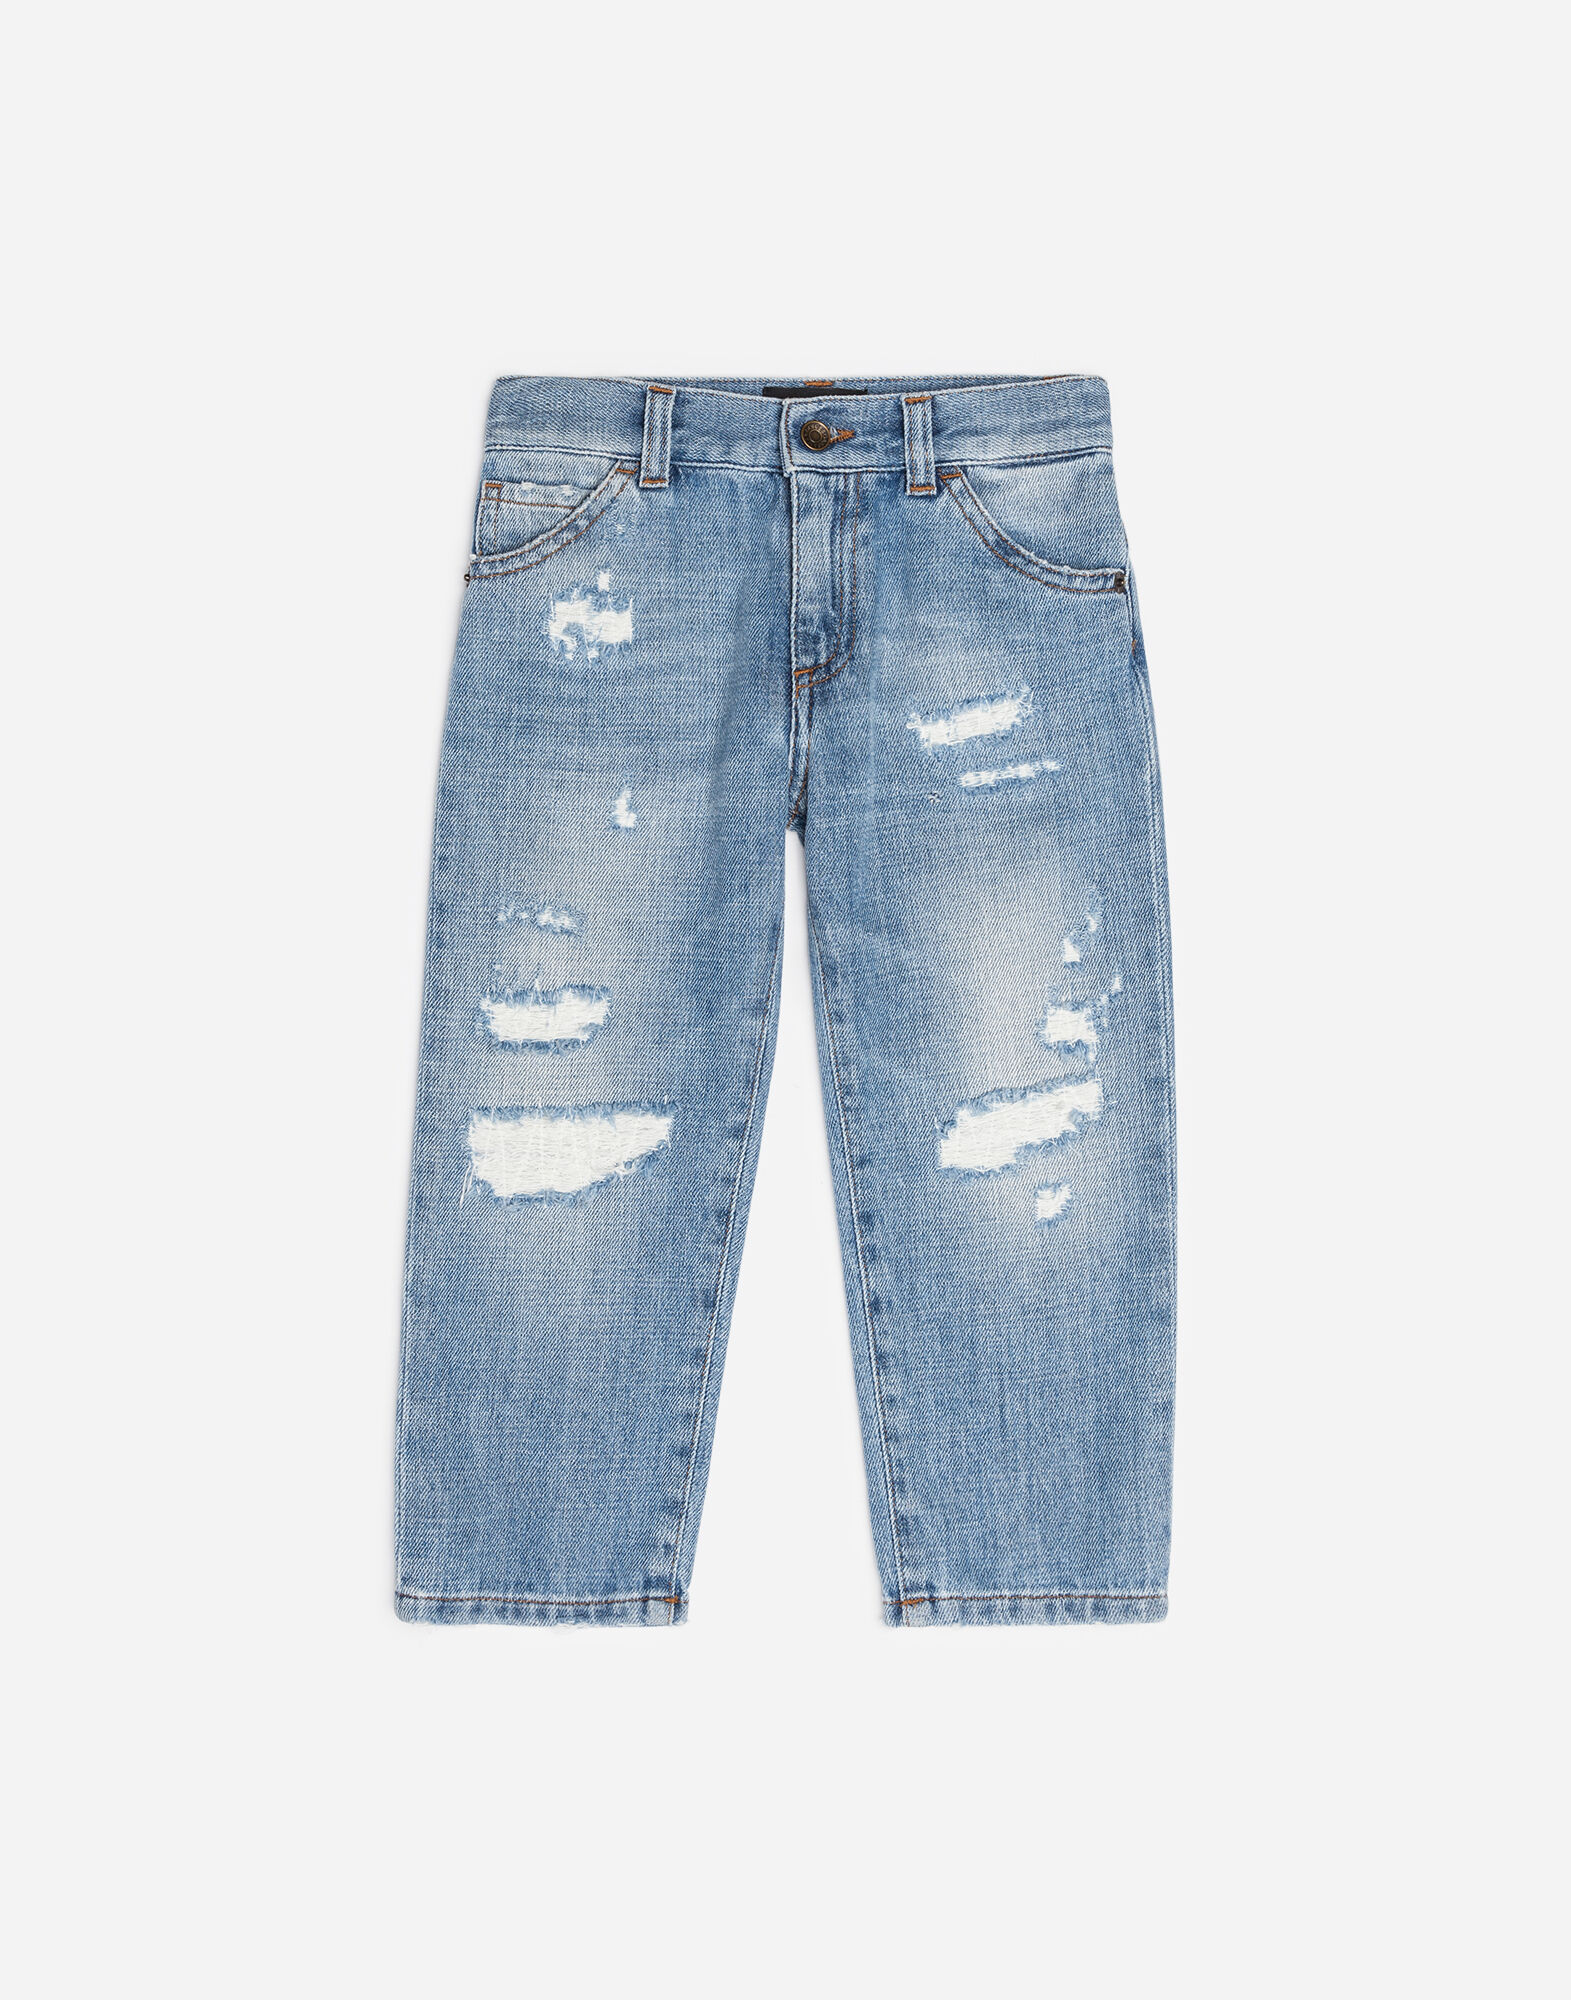 OVERSIZED JEANS WITH TEARS